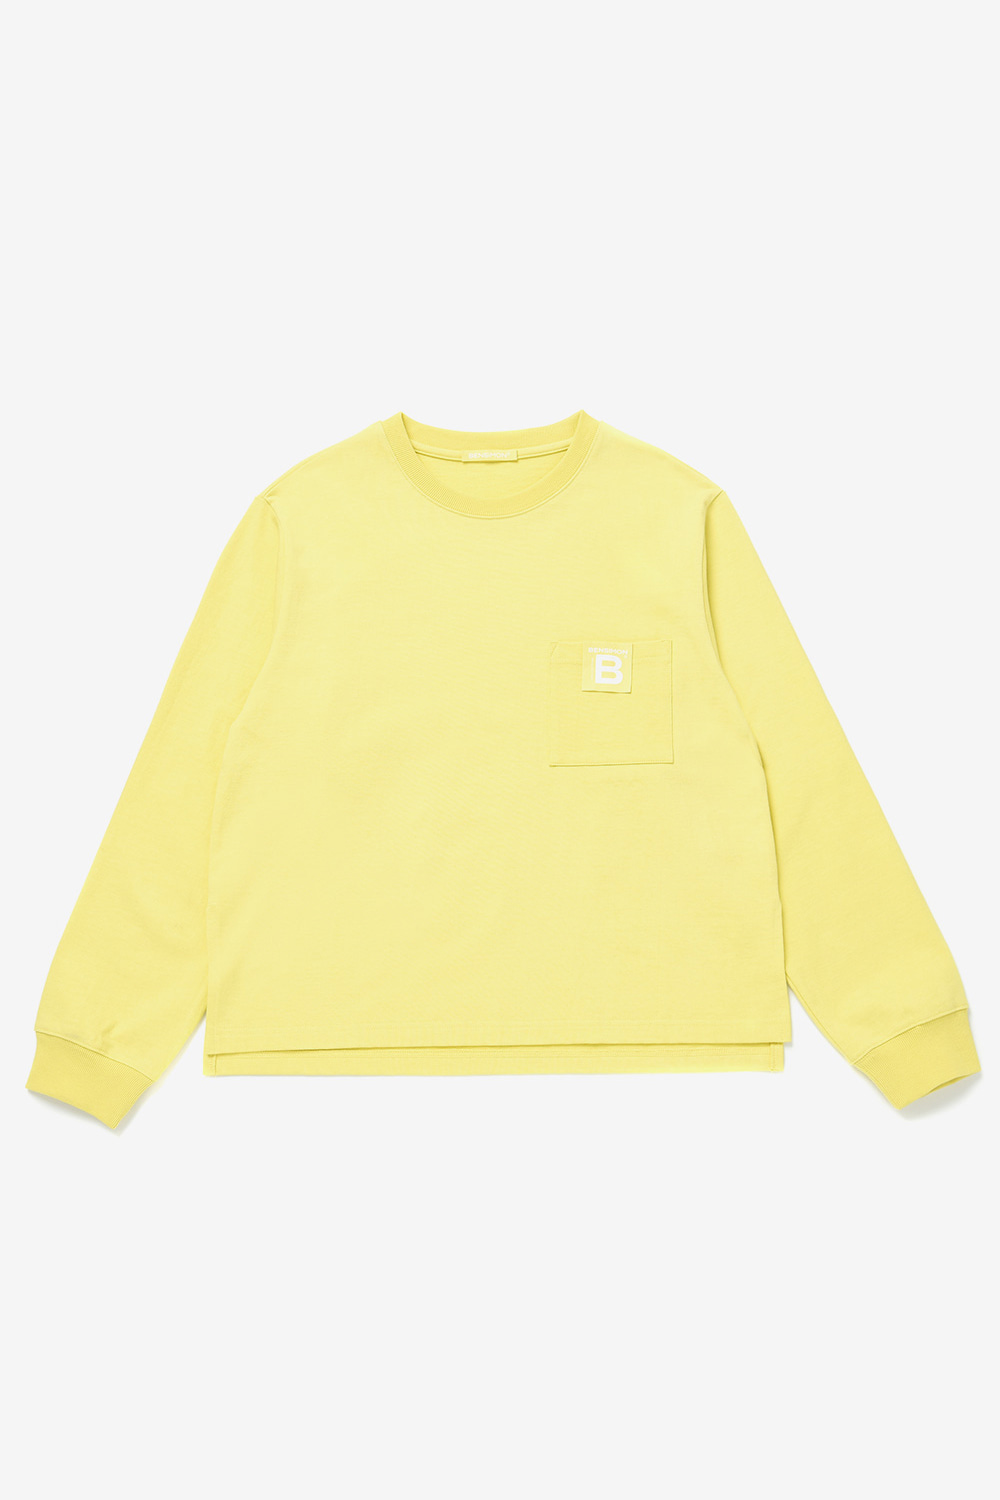 Original Label Long Sleeve_Yellow BS0STL203YL00F